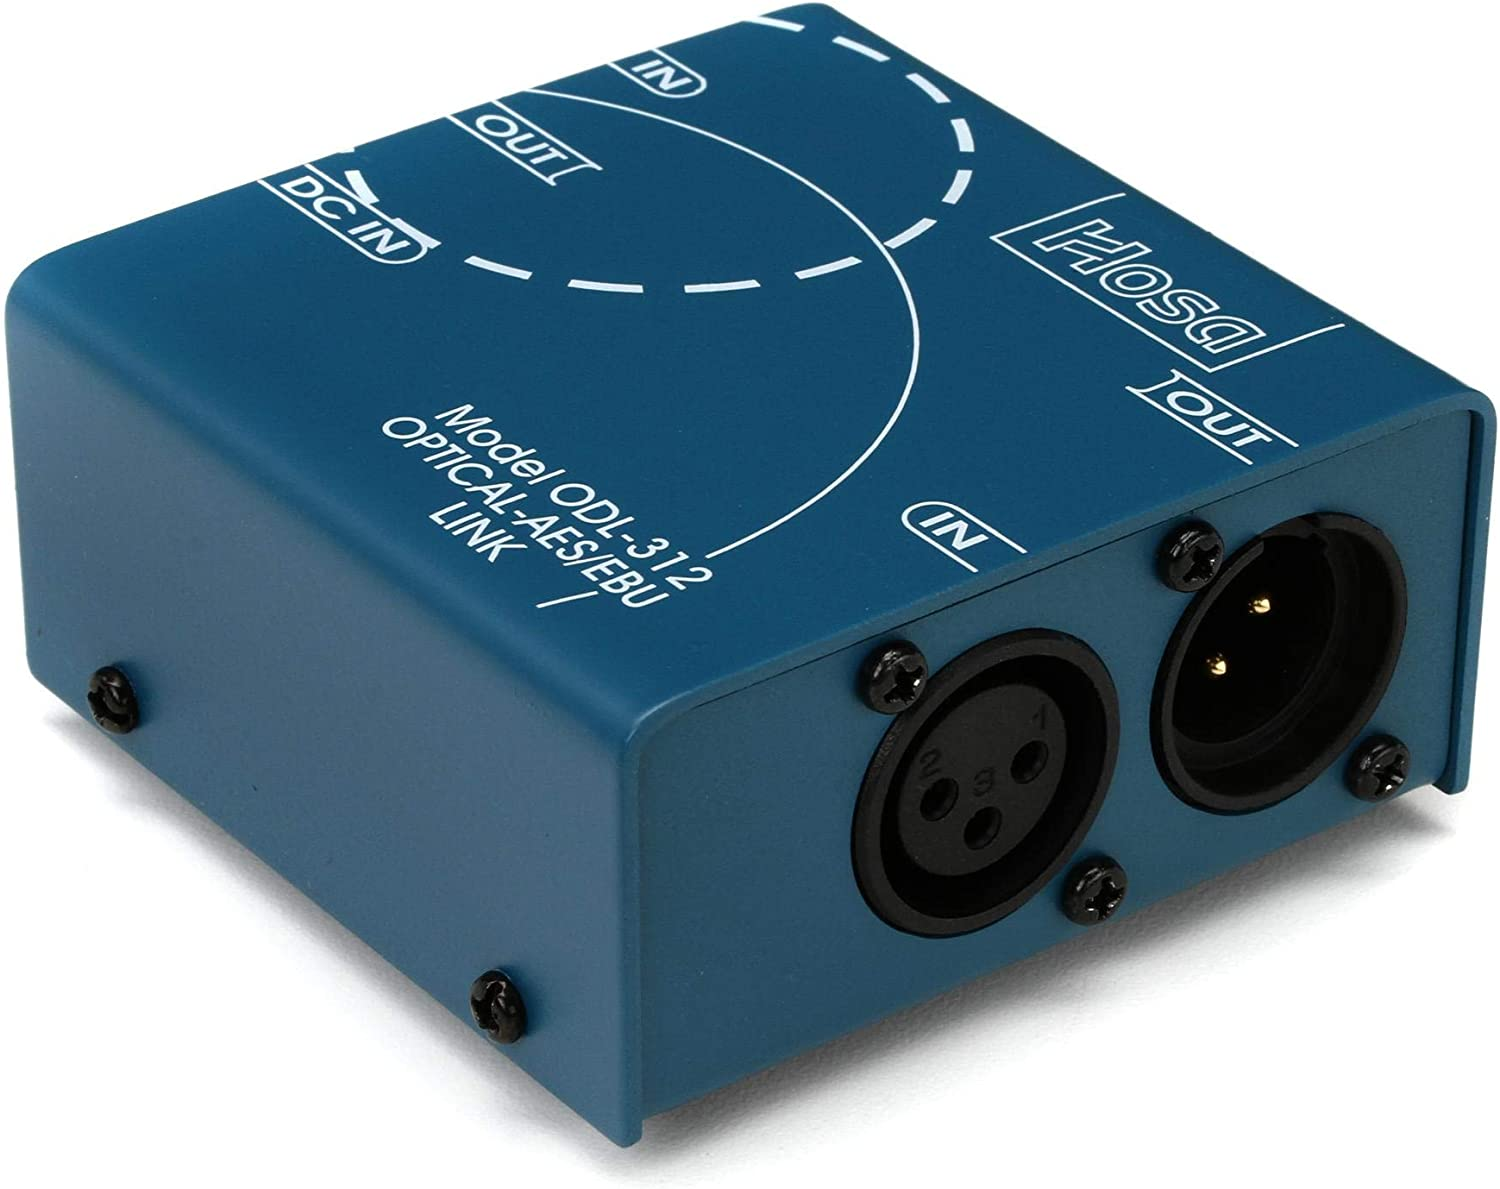 Hosa ODL-312 Optical SPDIF and AESEBU Digital Format Converter (Discontinued by Manufacturer)